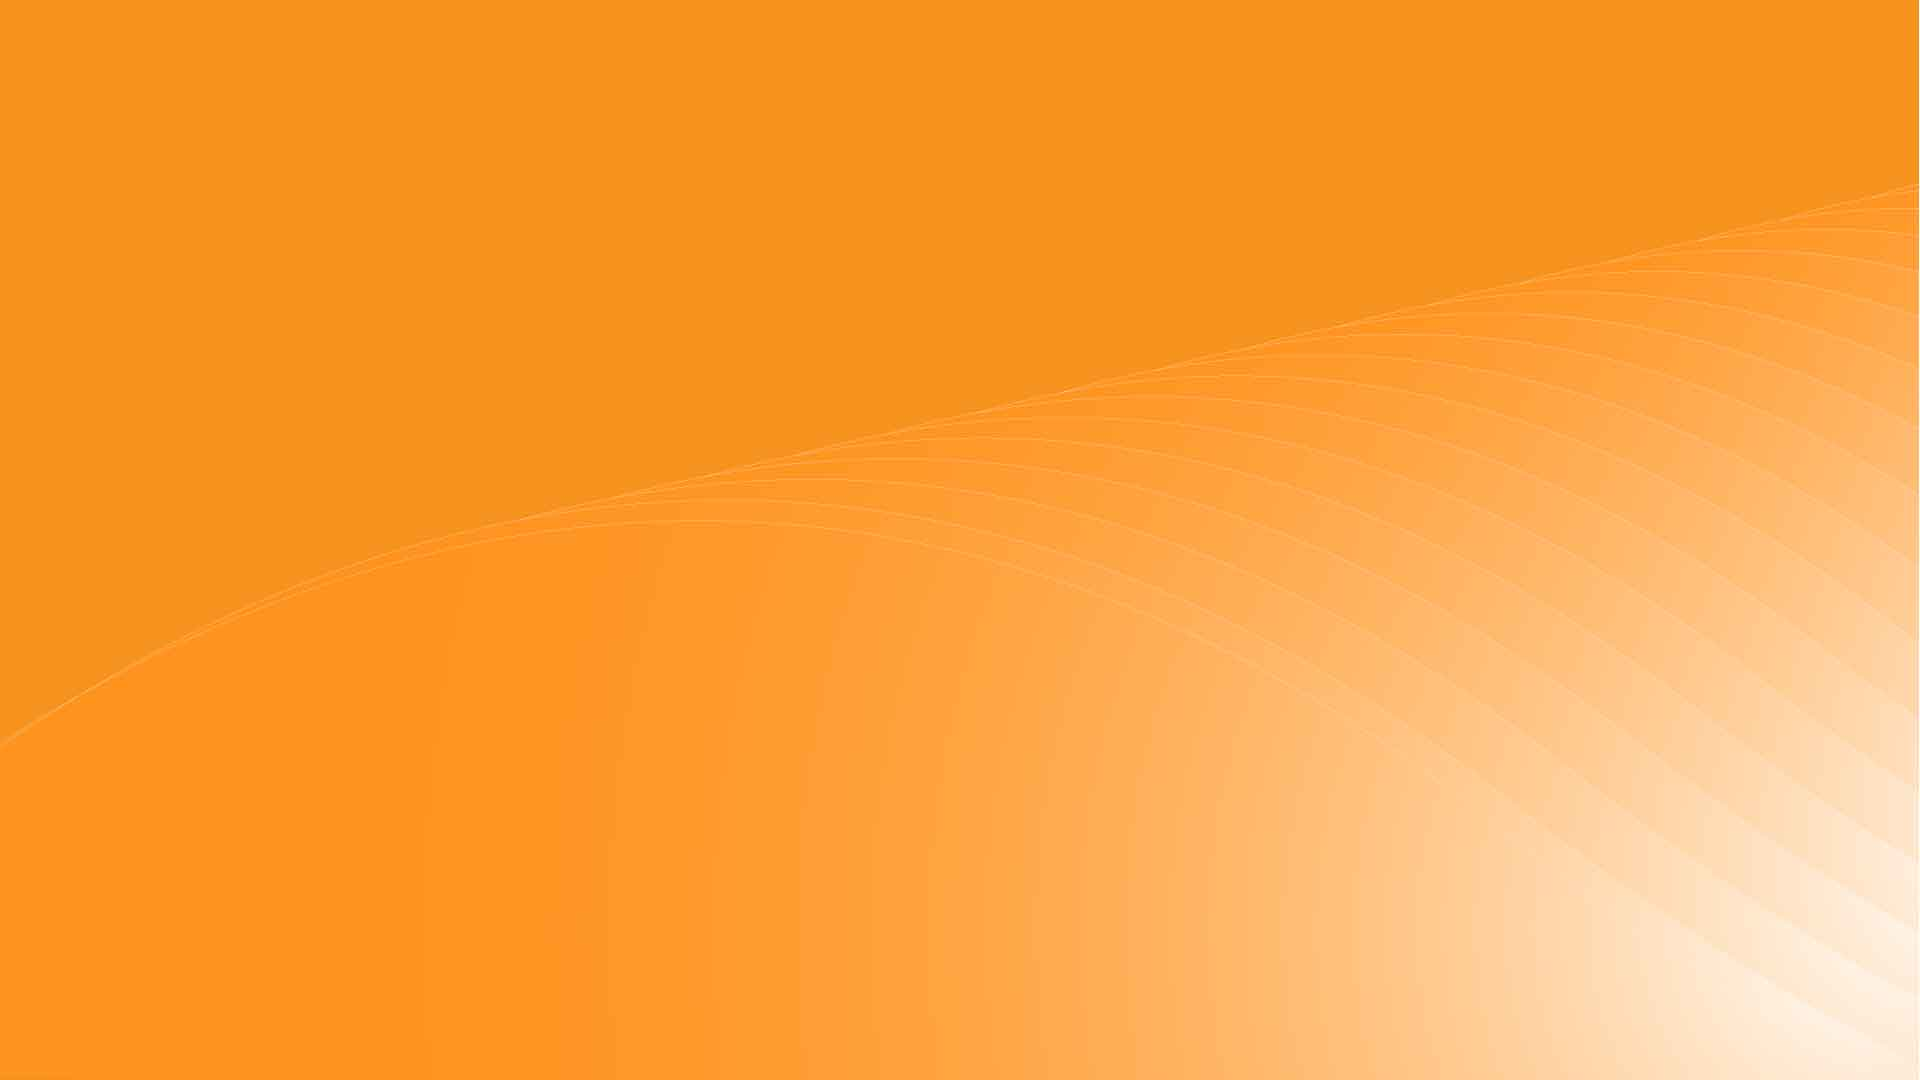 Orange Curve Neutral Abstract Background